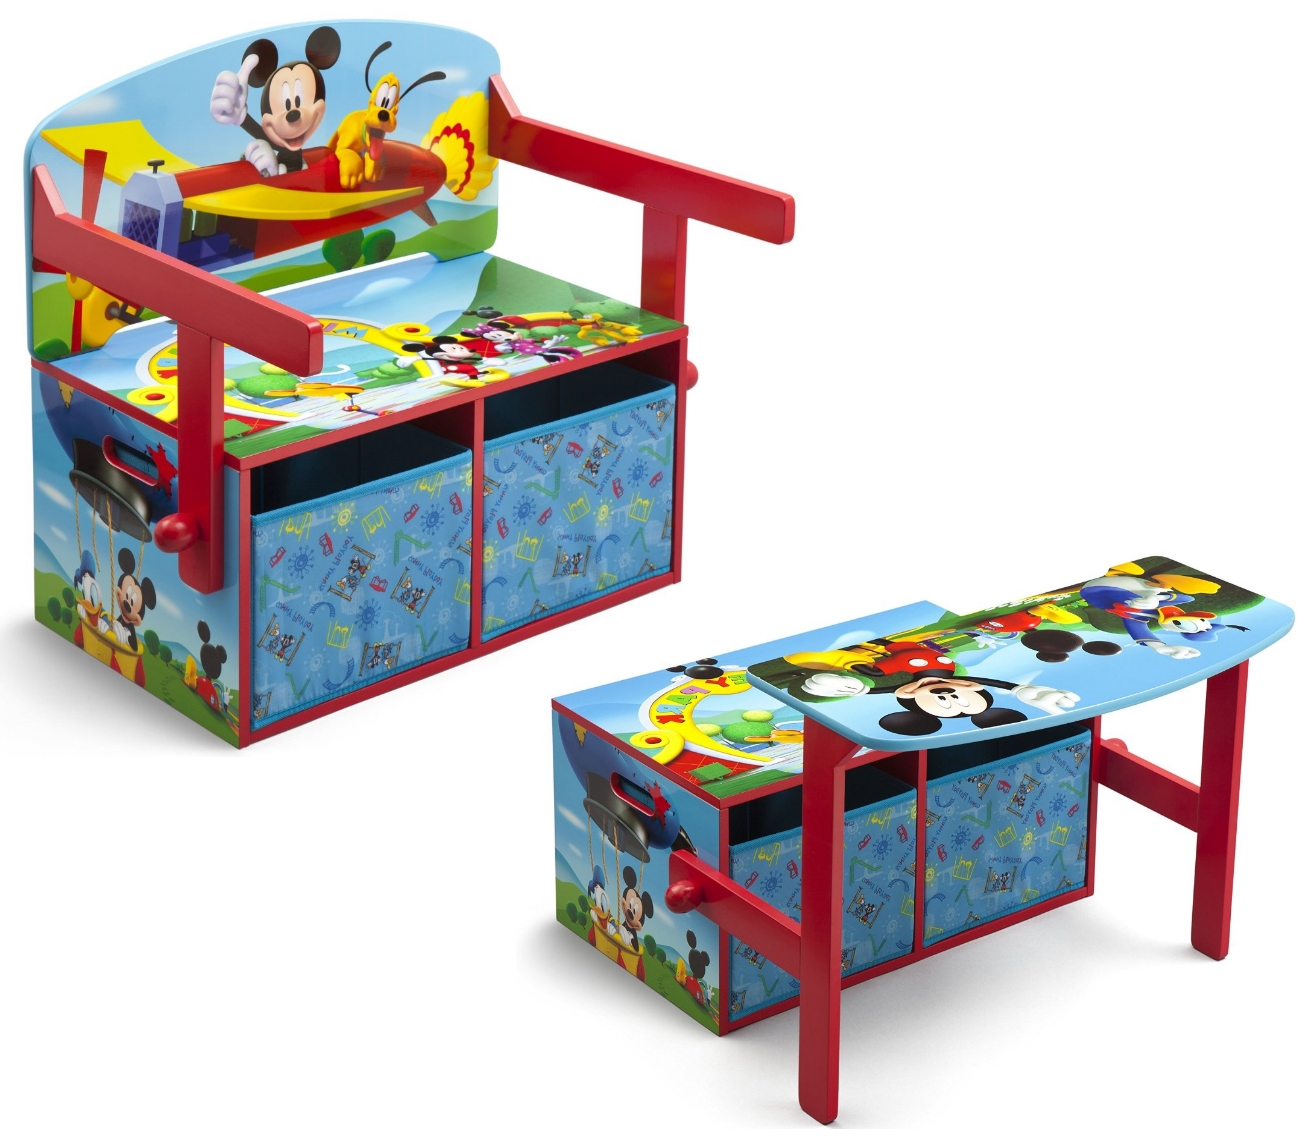 kinderbank disney bank mickey mouse 3 in 1 aufbewahrung. Black Bedroom Furniture Sets. Home Design Ideas